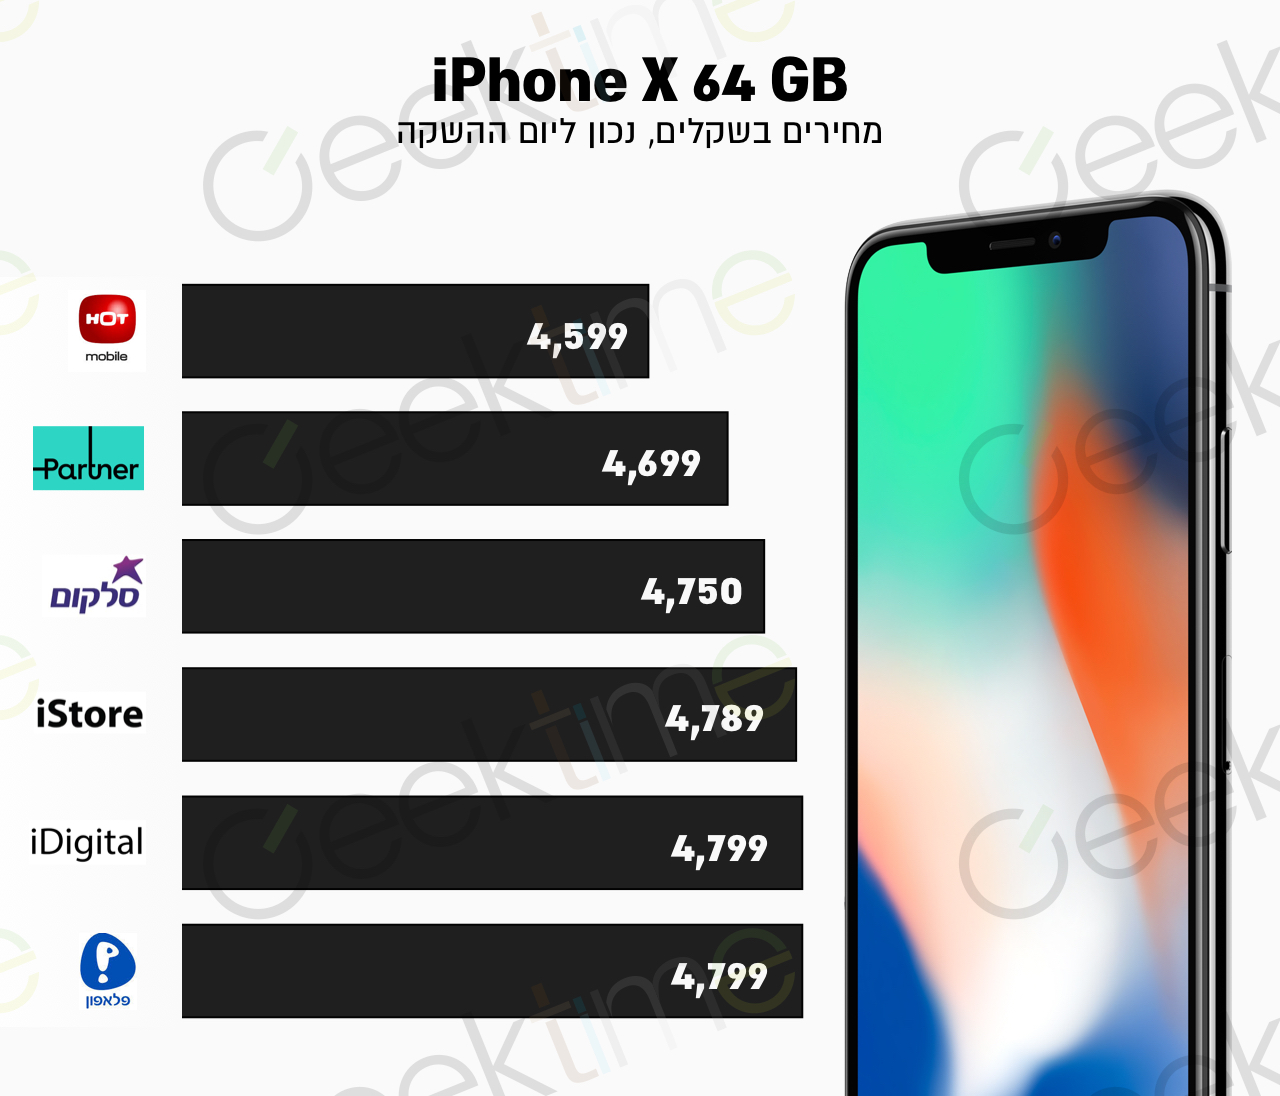 iphone x prices in israel